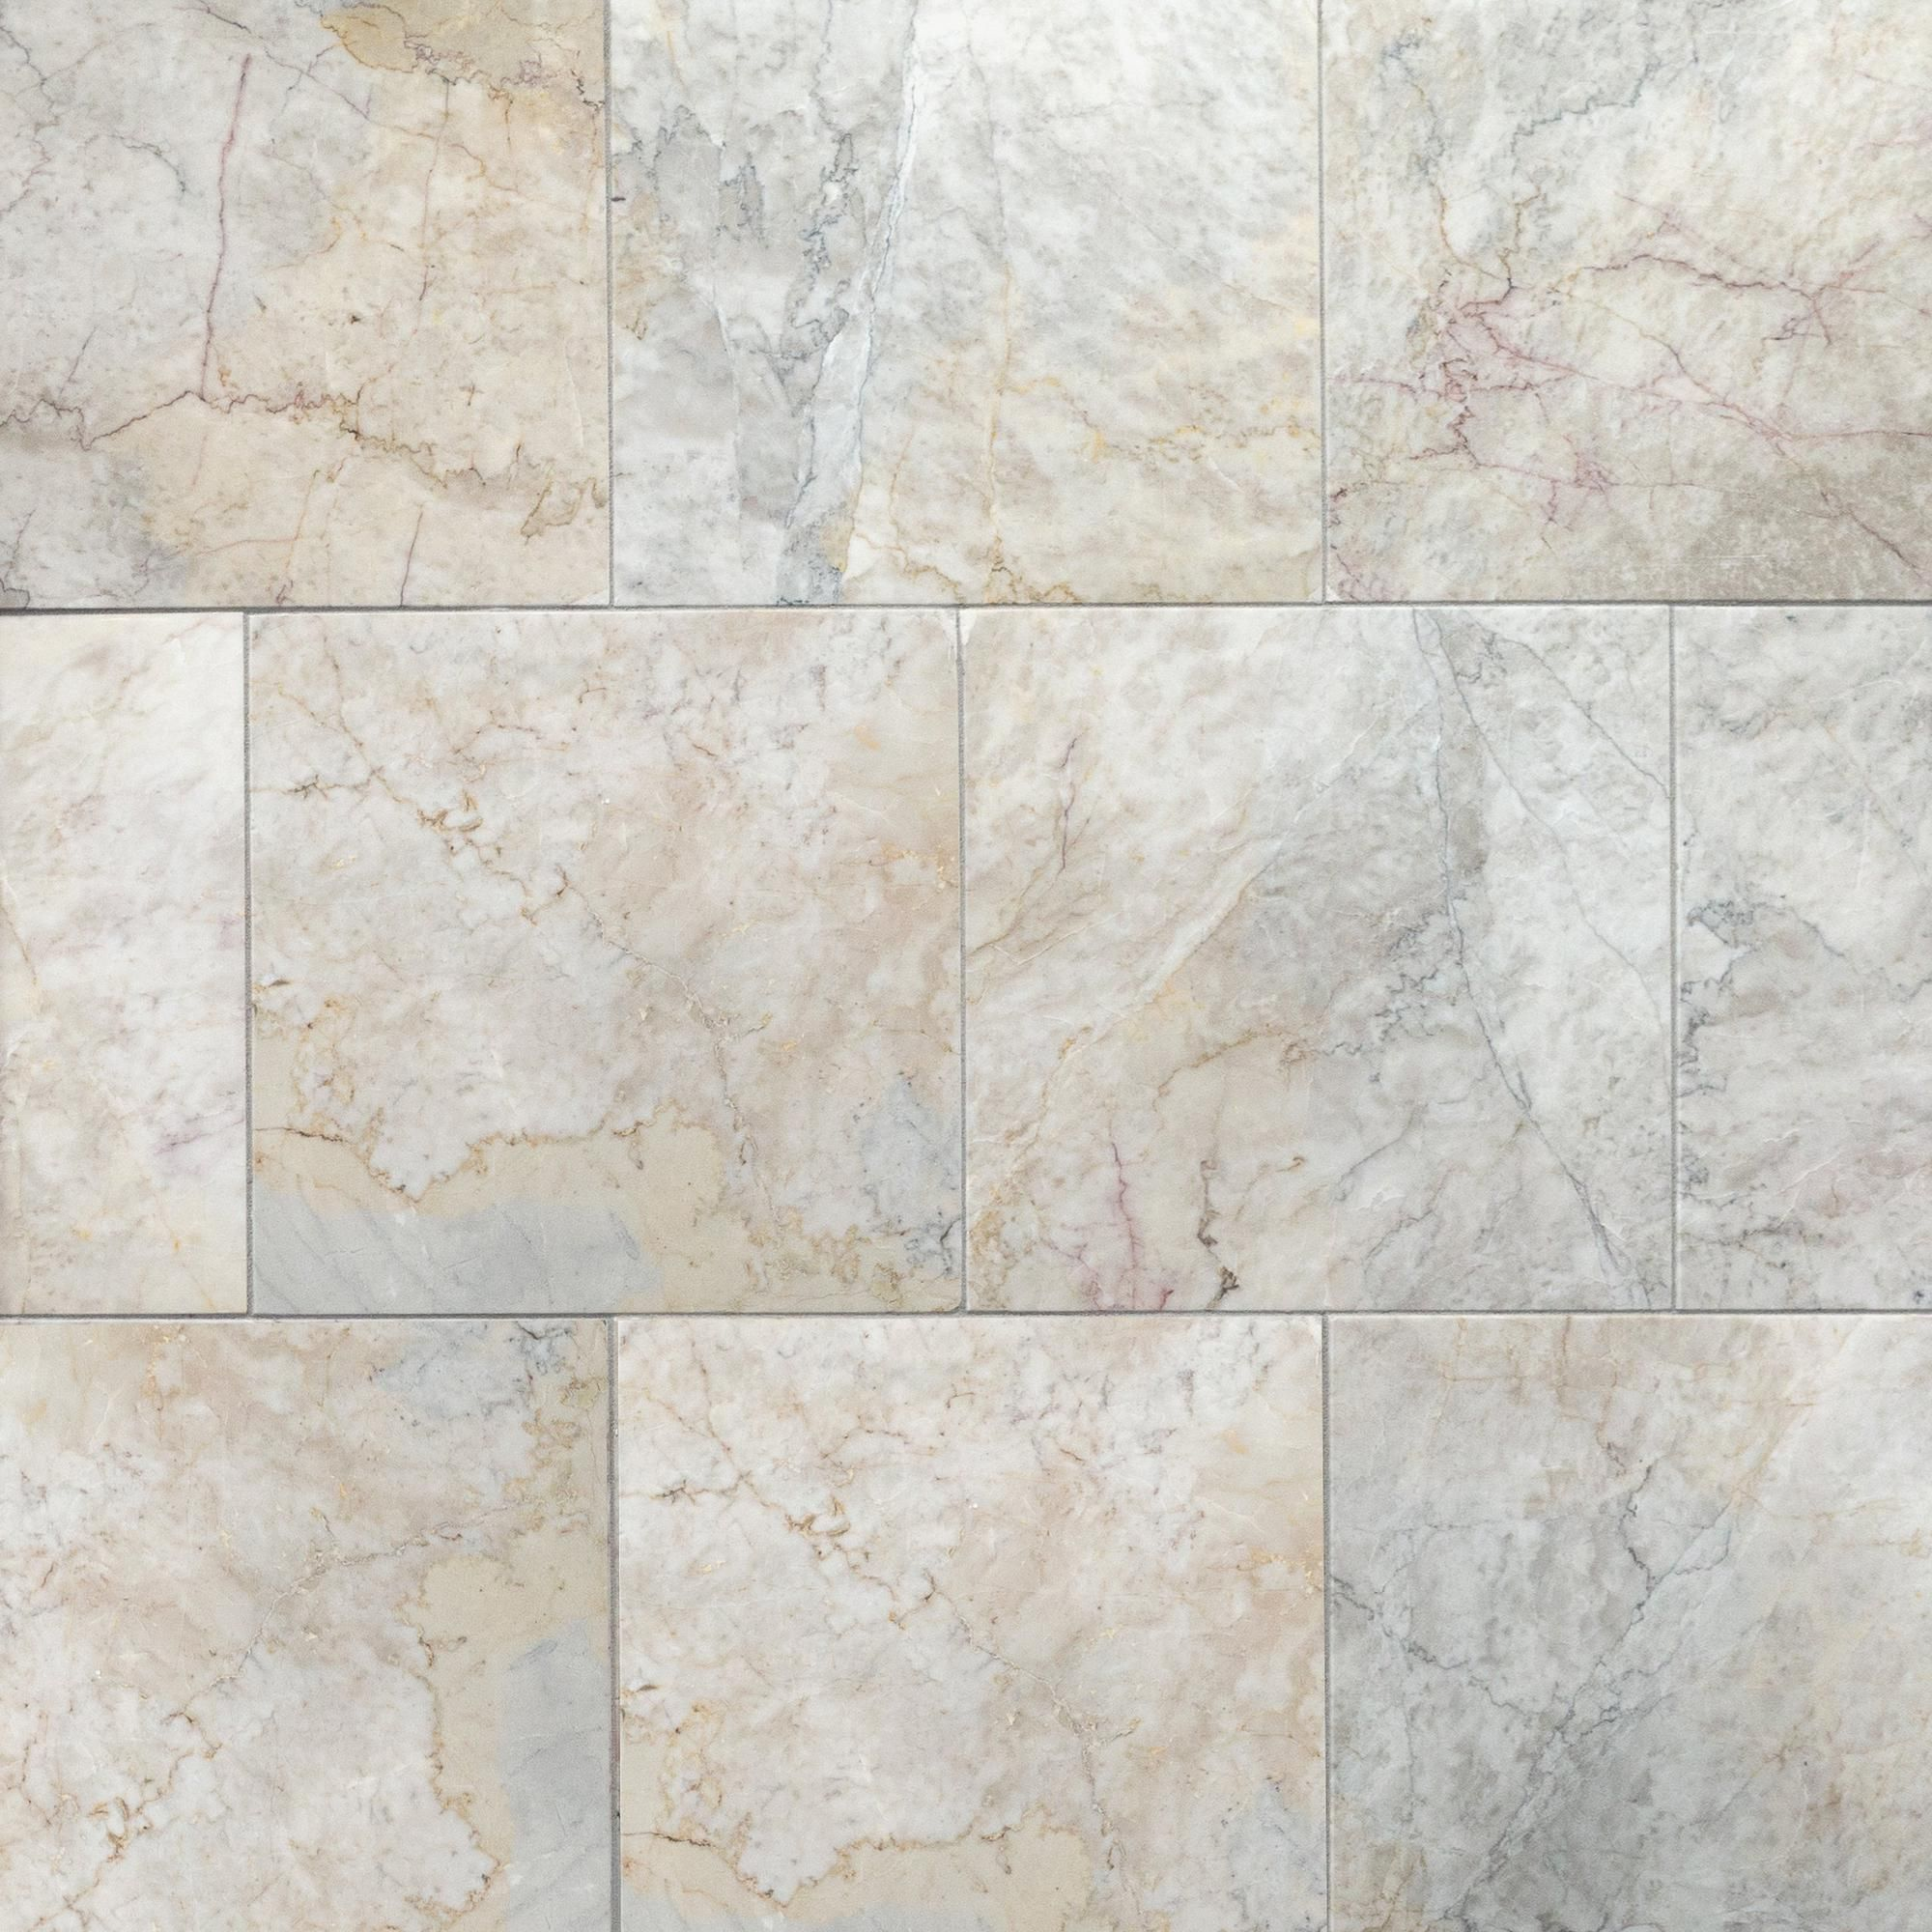 Dynasty Cream Marble Tile Floor Decor In 2020 Cream Marble Tiles Honed Marble Tiles Marble Tile